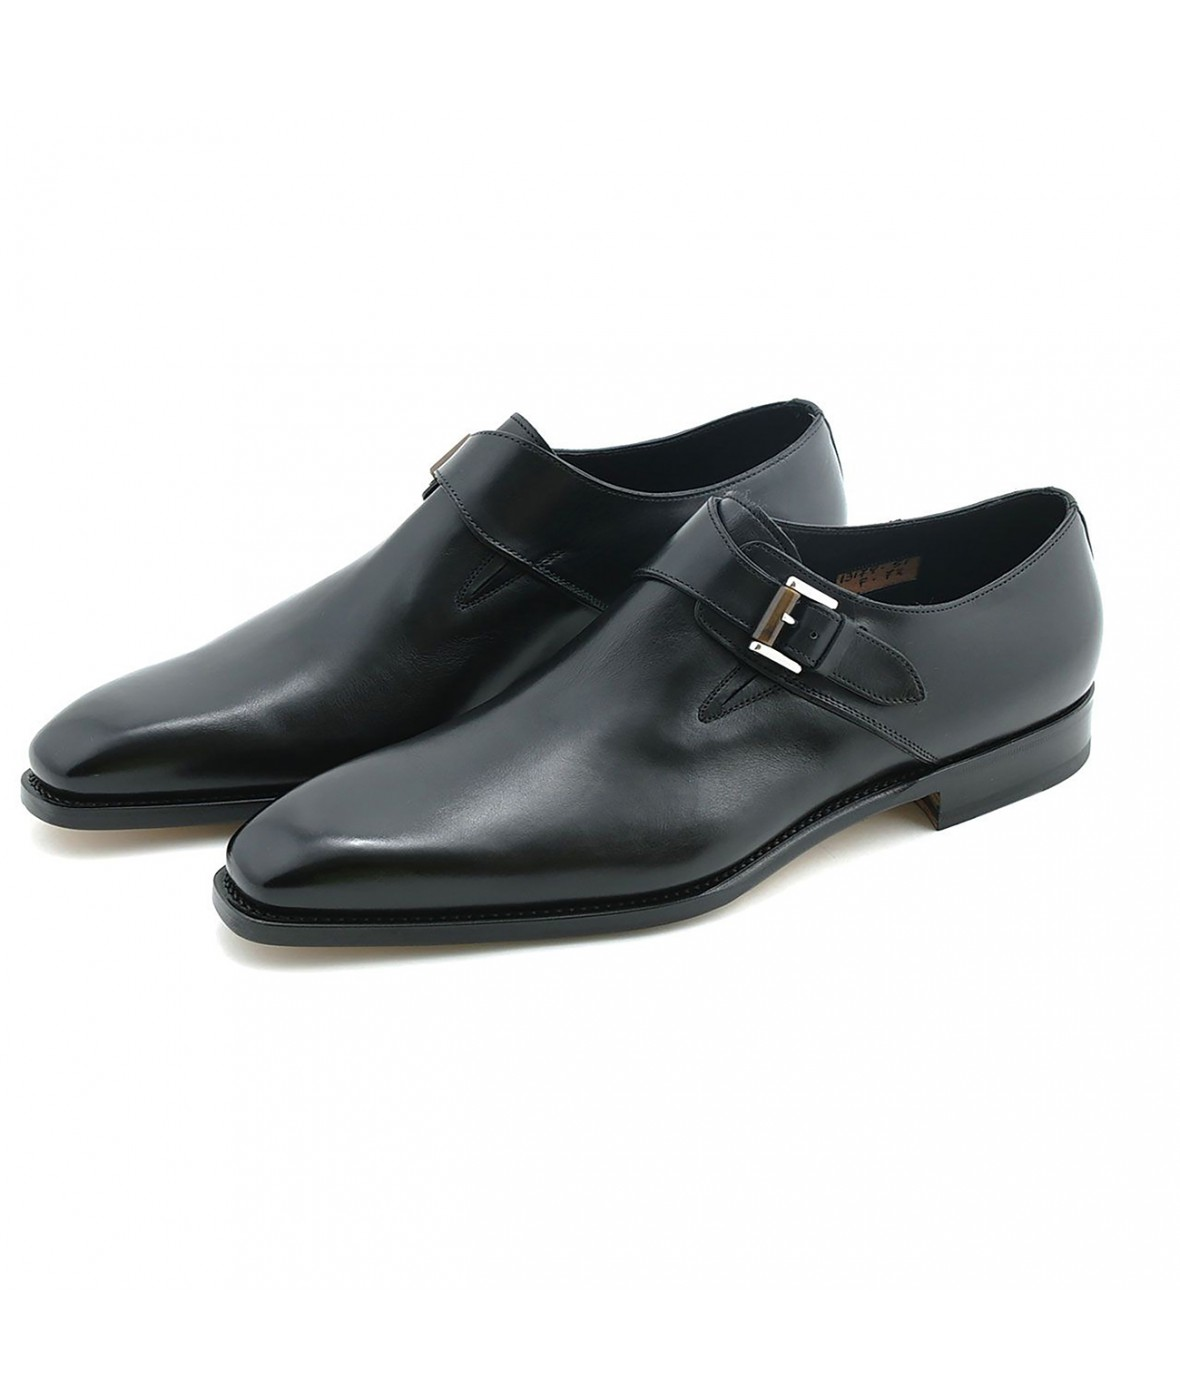 Santoni Clear Night (23031)